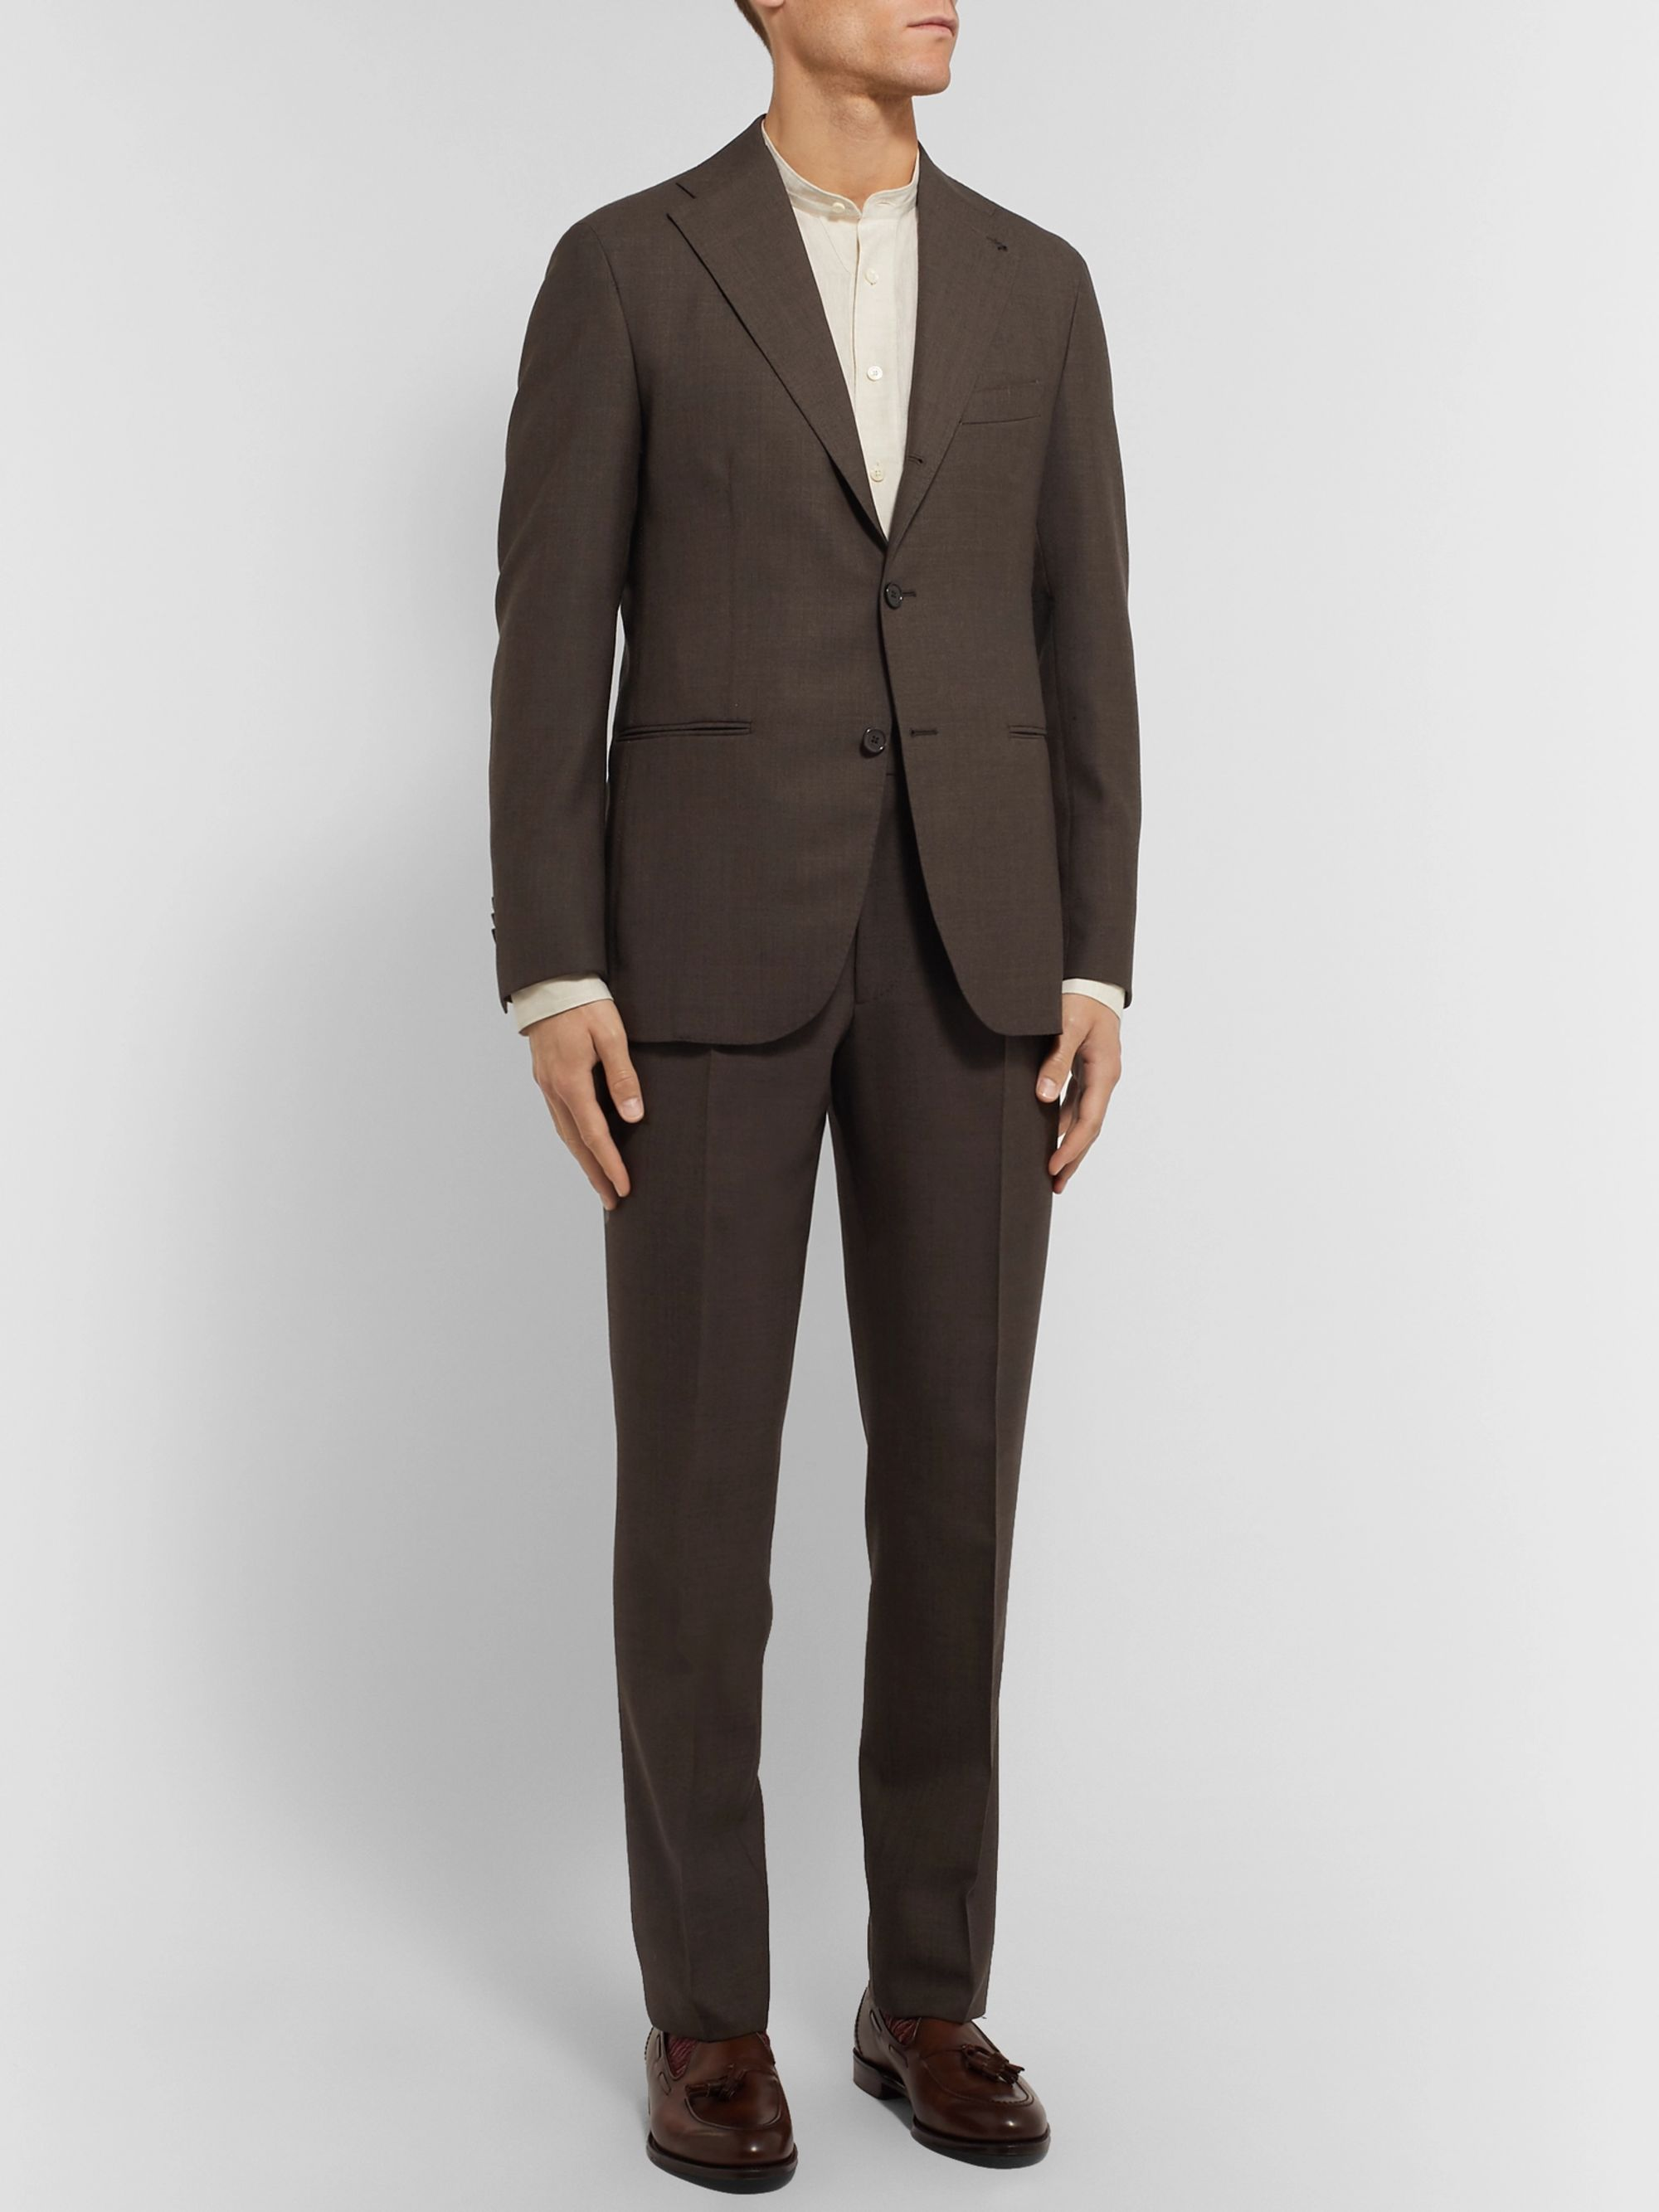 Berg & Berg Tobacco Dan II Slim-Fit Unstructured Wool Suit Jacket